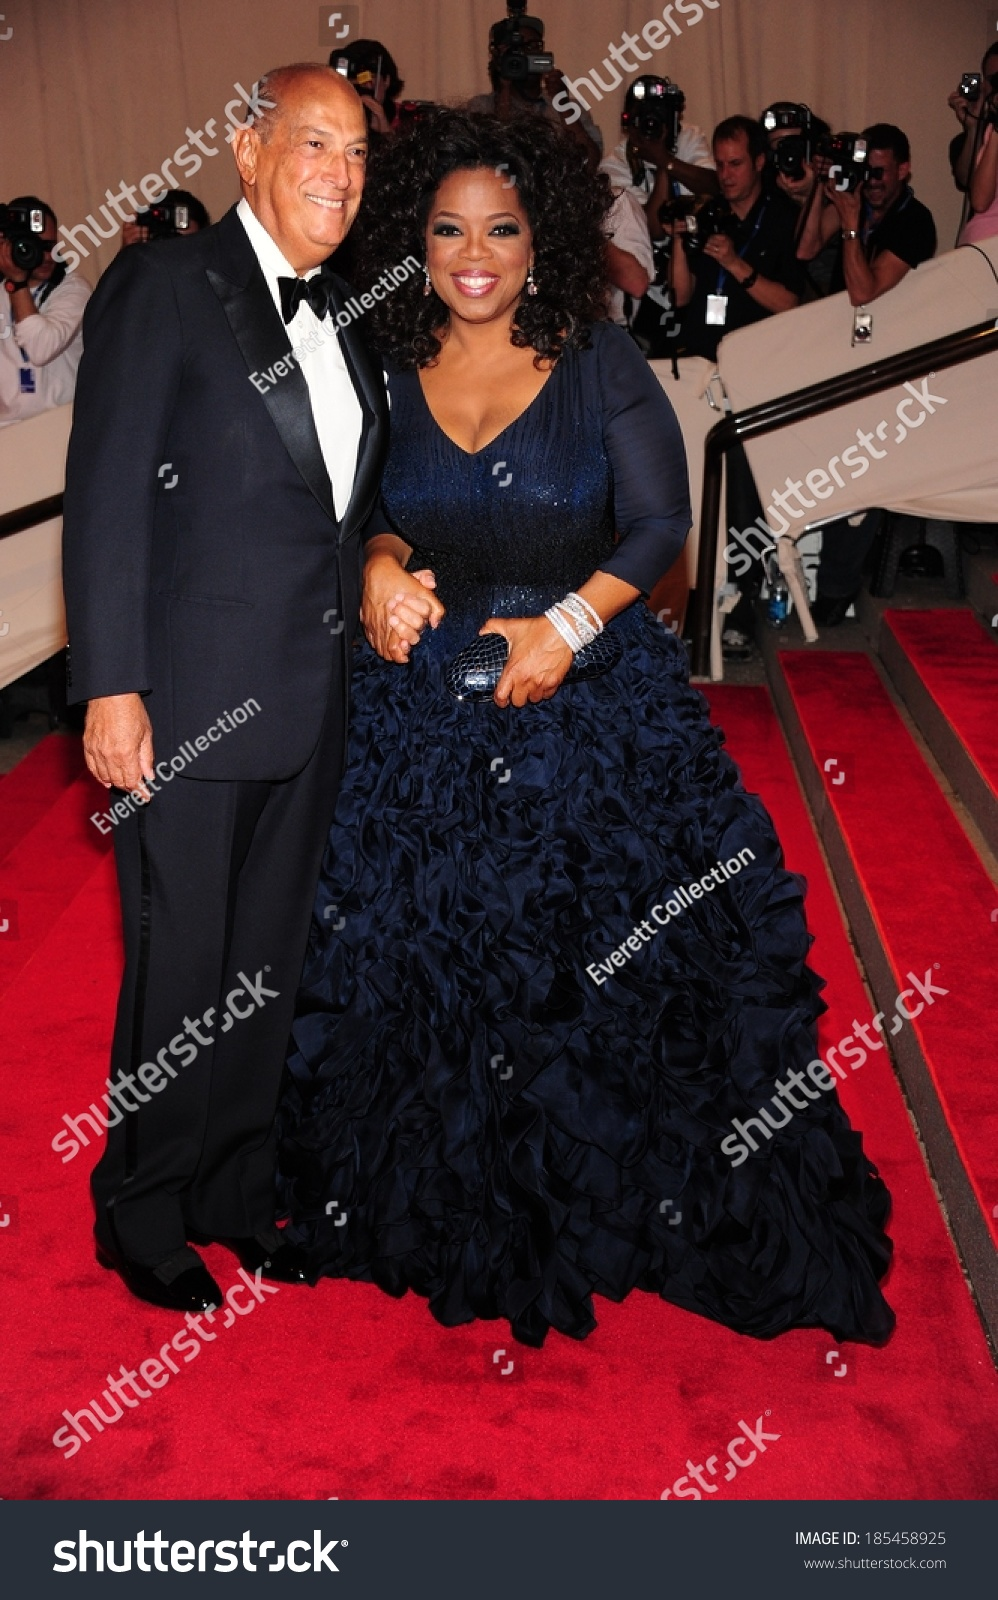 Oscar De La Renta Oprah Winfrey Stock Photo (Edit Now) 185458925 ...